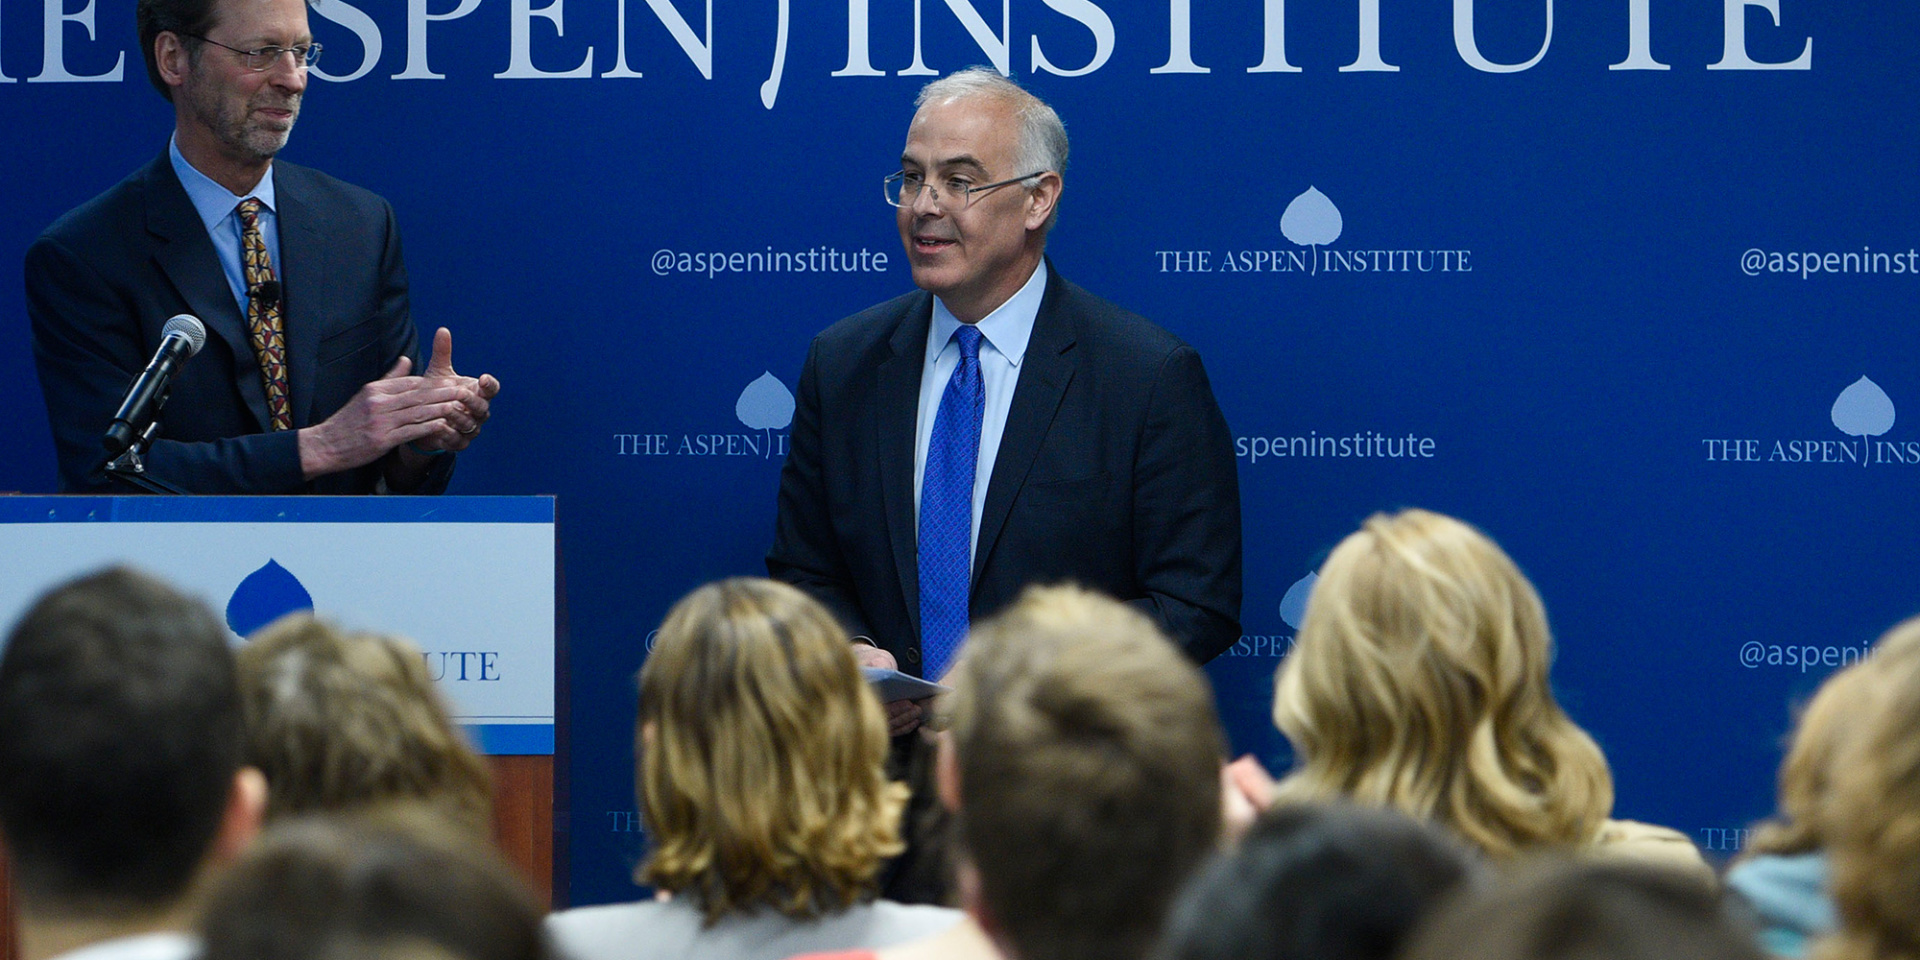 David Brooks Joins the Aspen Institute to Find Common Ground